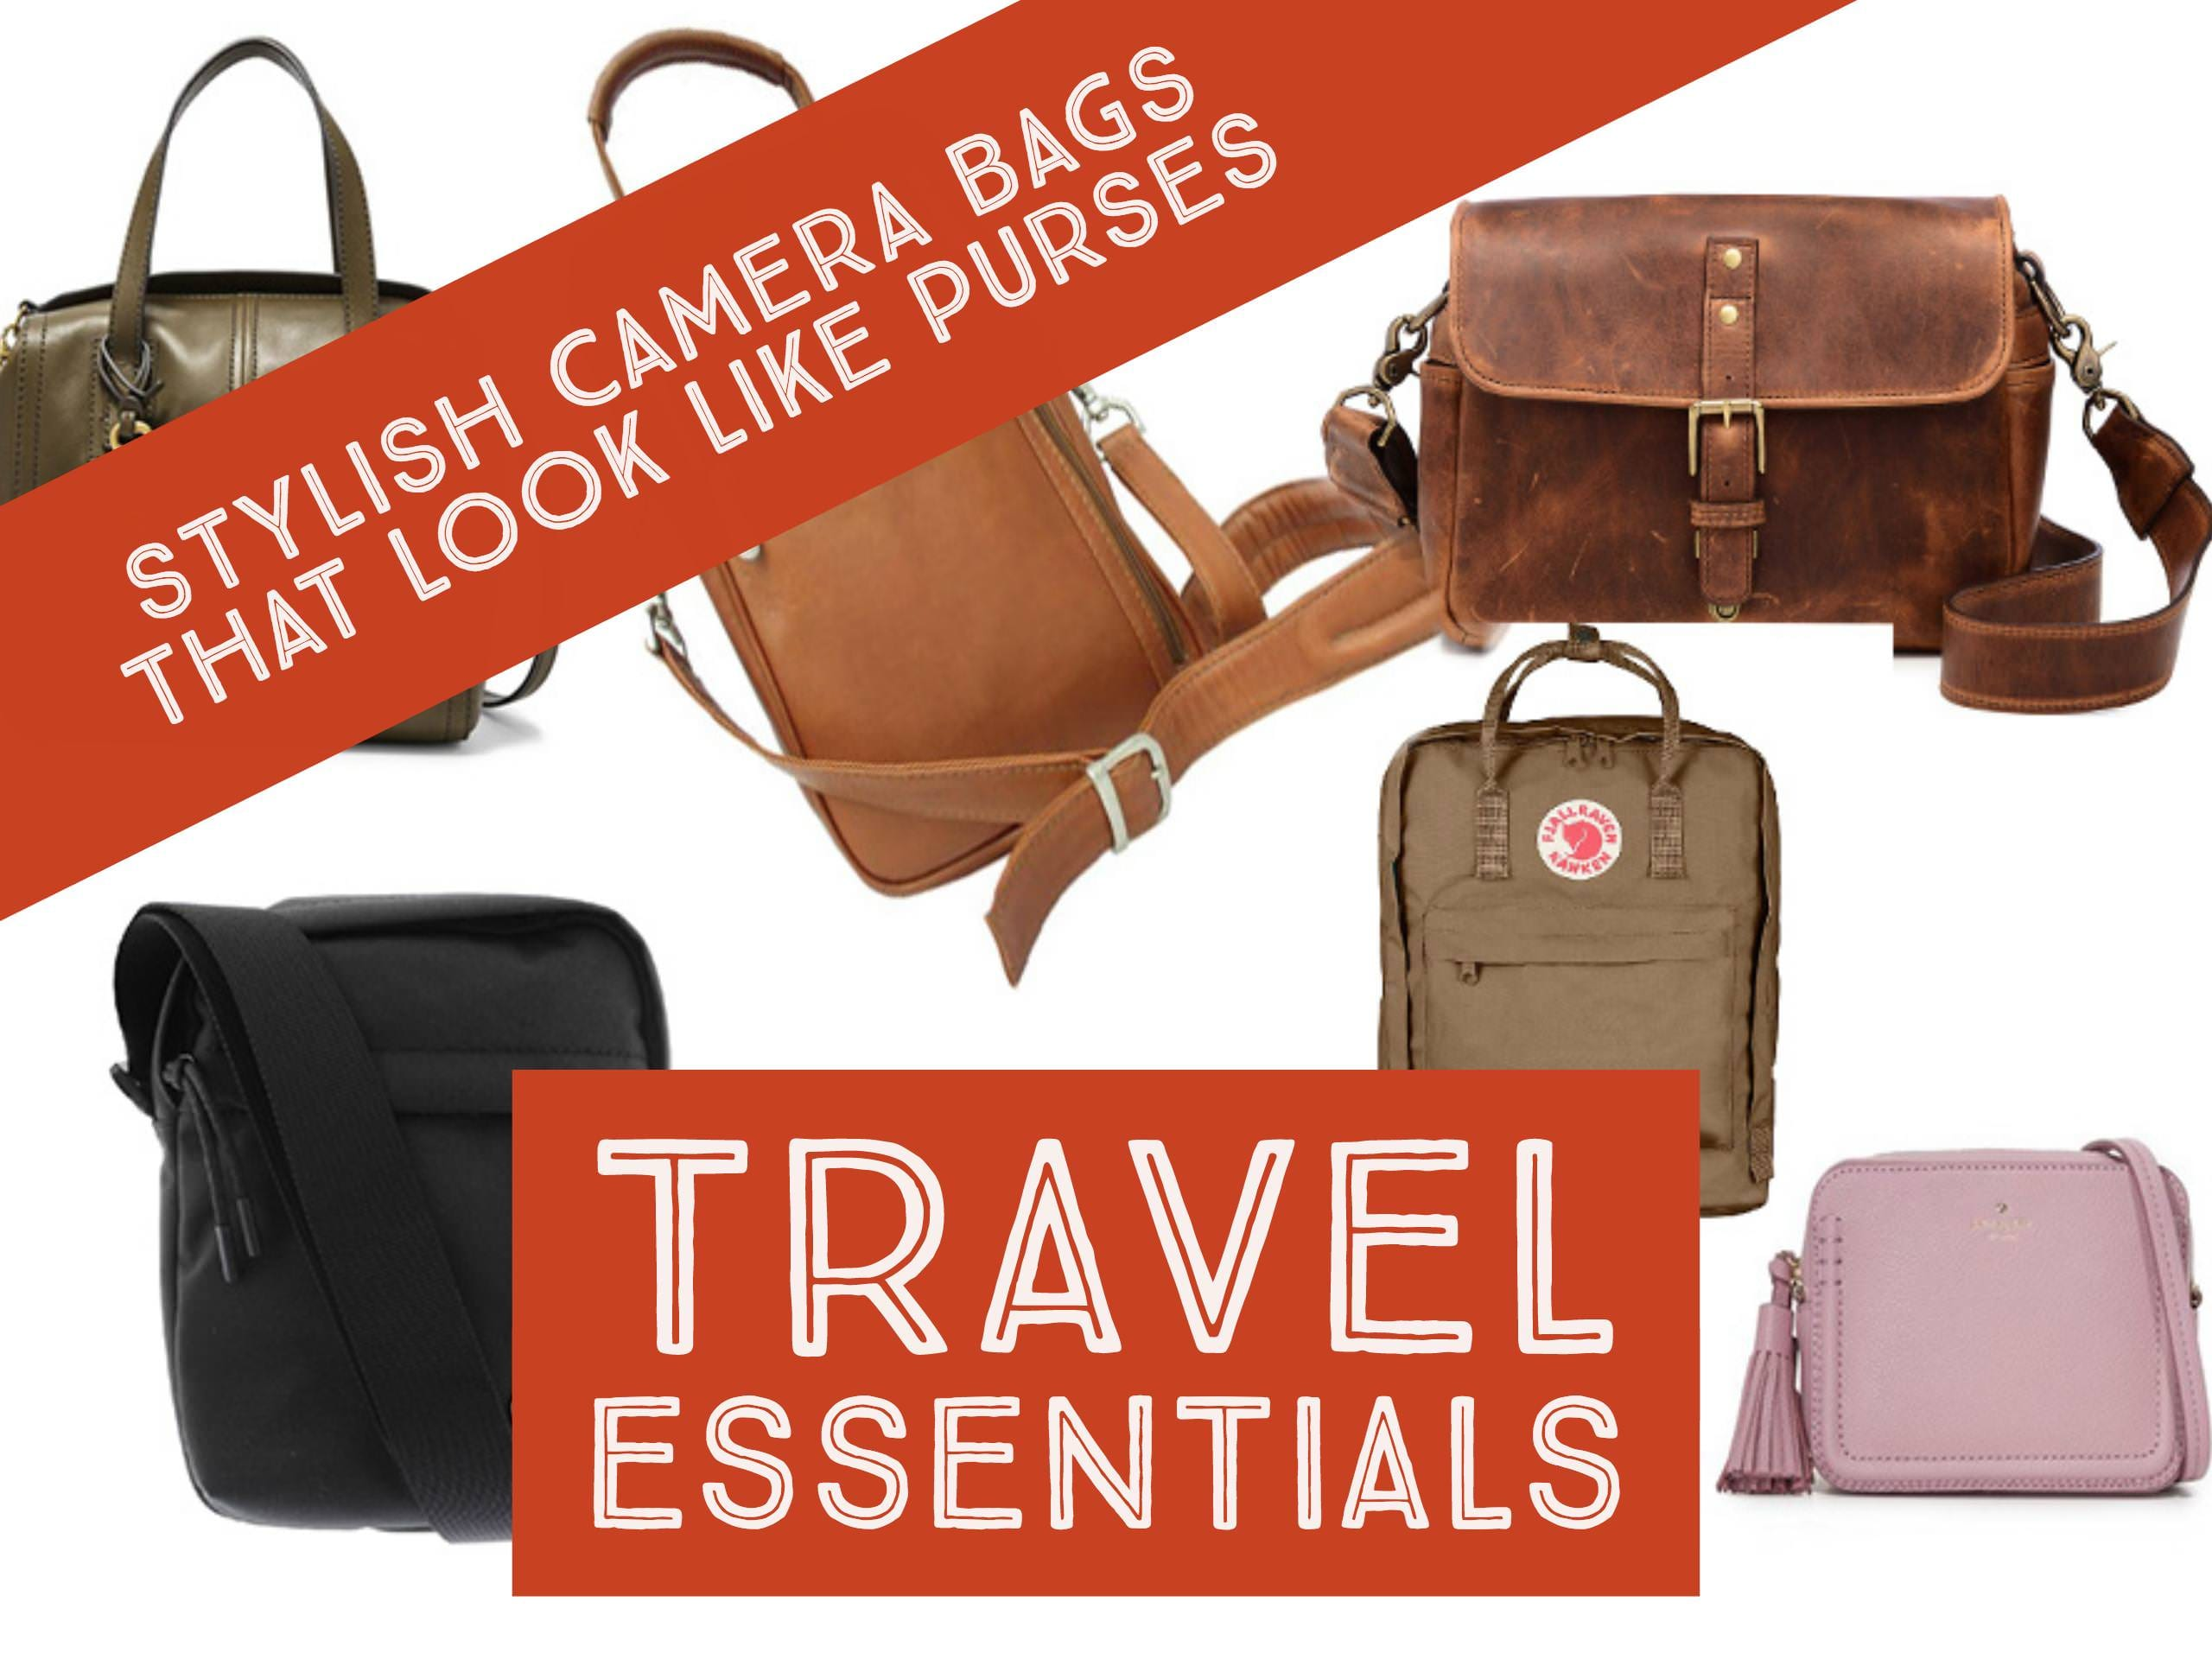 Camera Bags that Look Like Purses